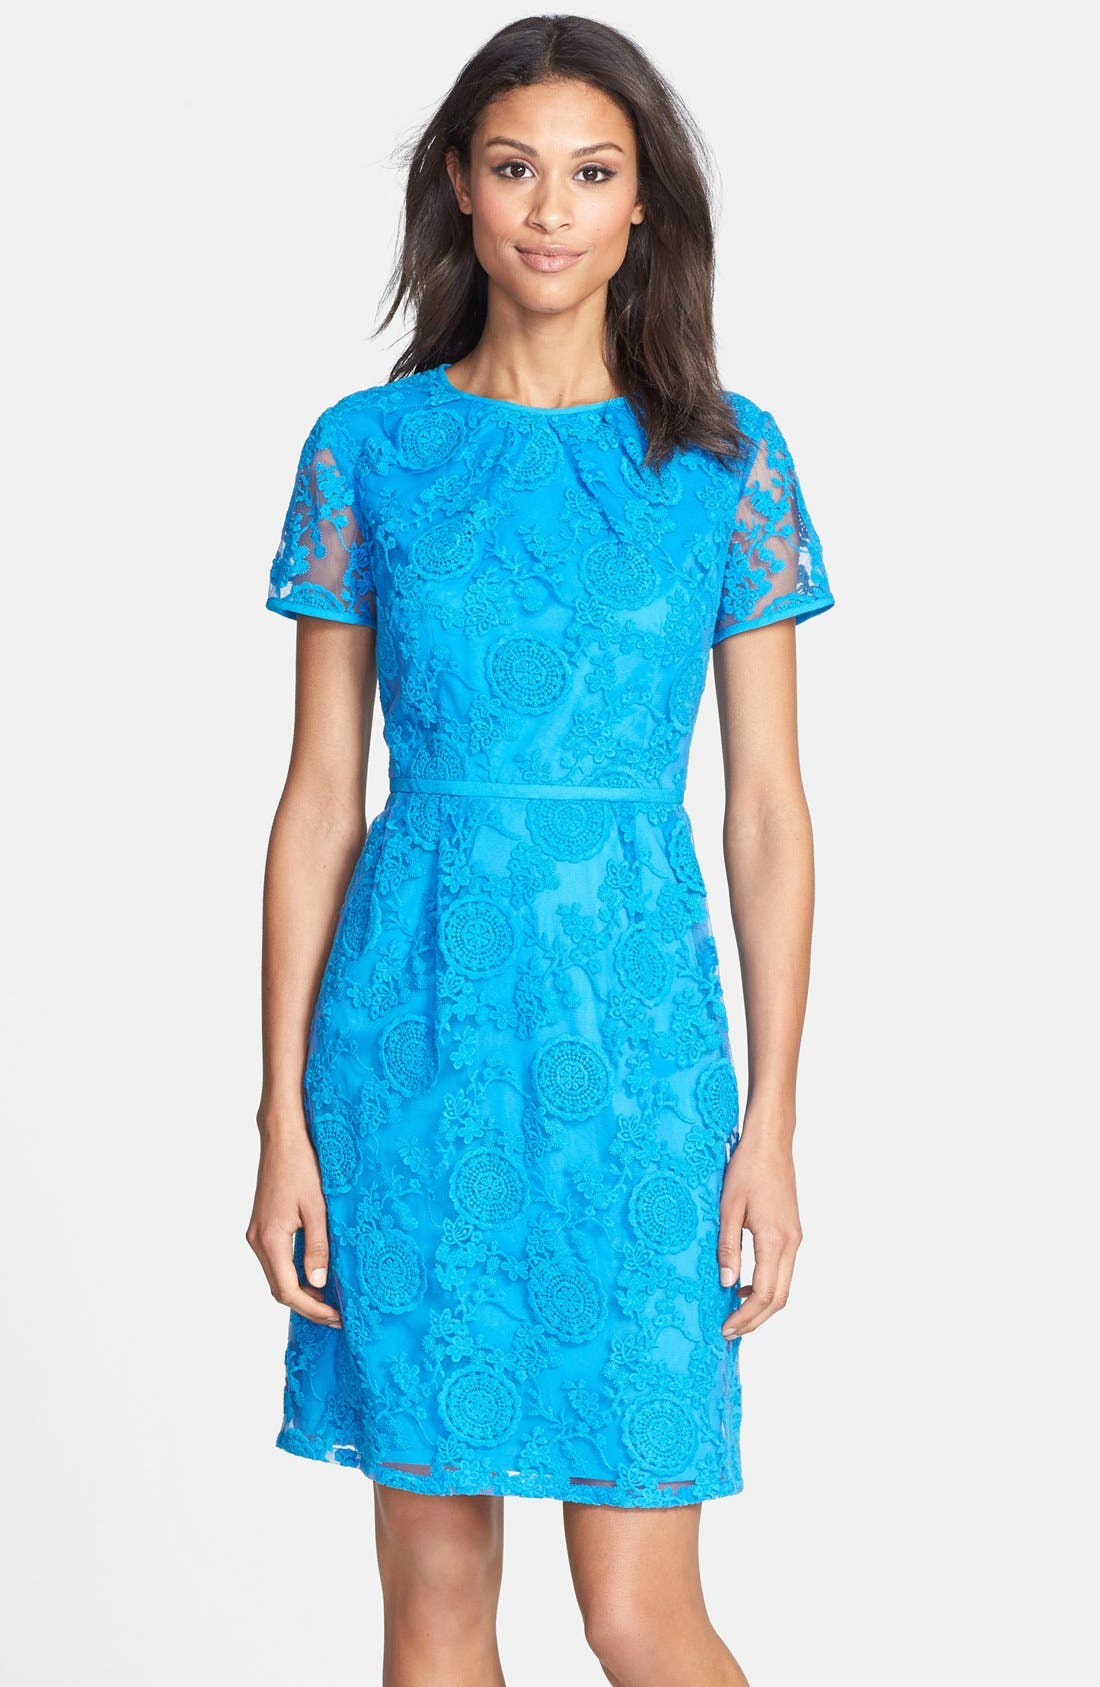 Alternate Image 1 Selected - Adrianna Papell Embroidered Lace Dress